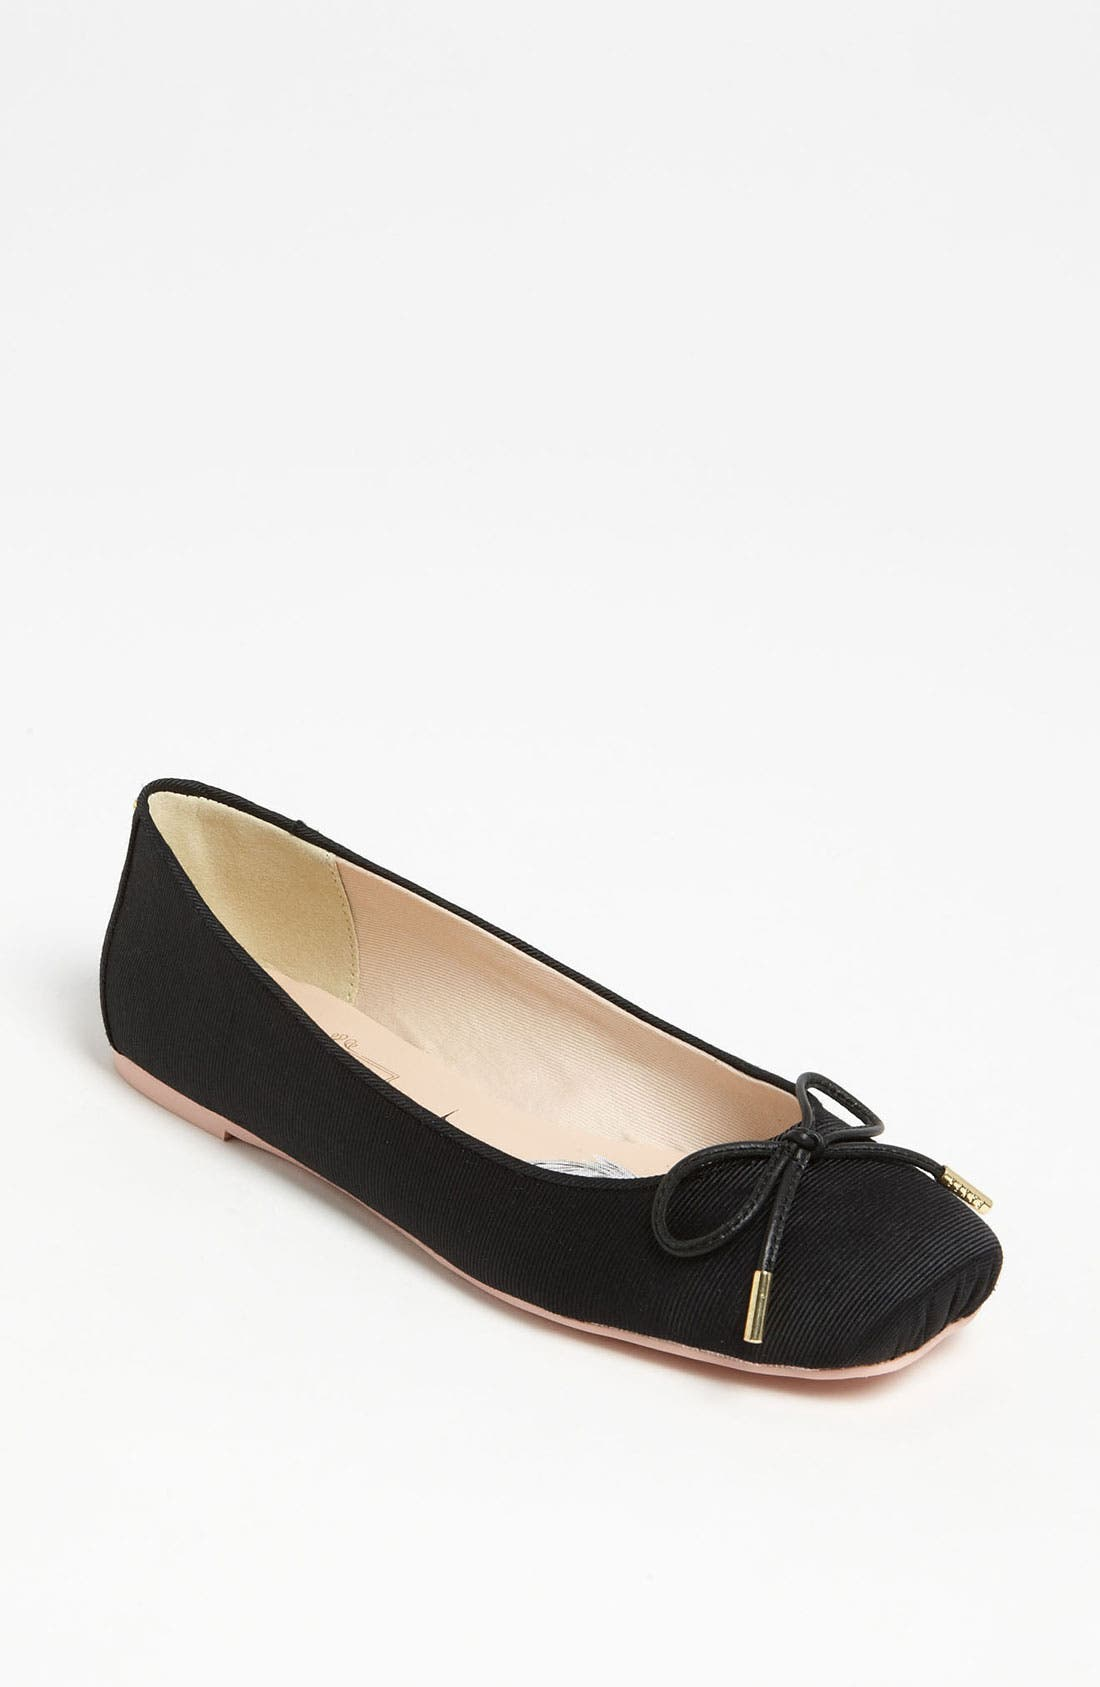 'Charee' Ballet Flat,                         Main,                         color, 011